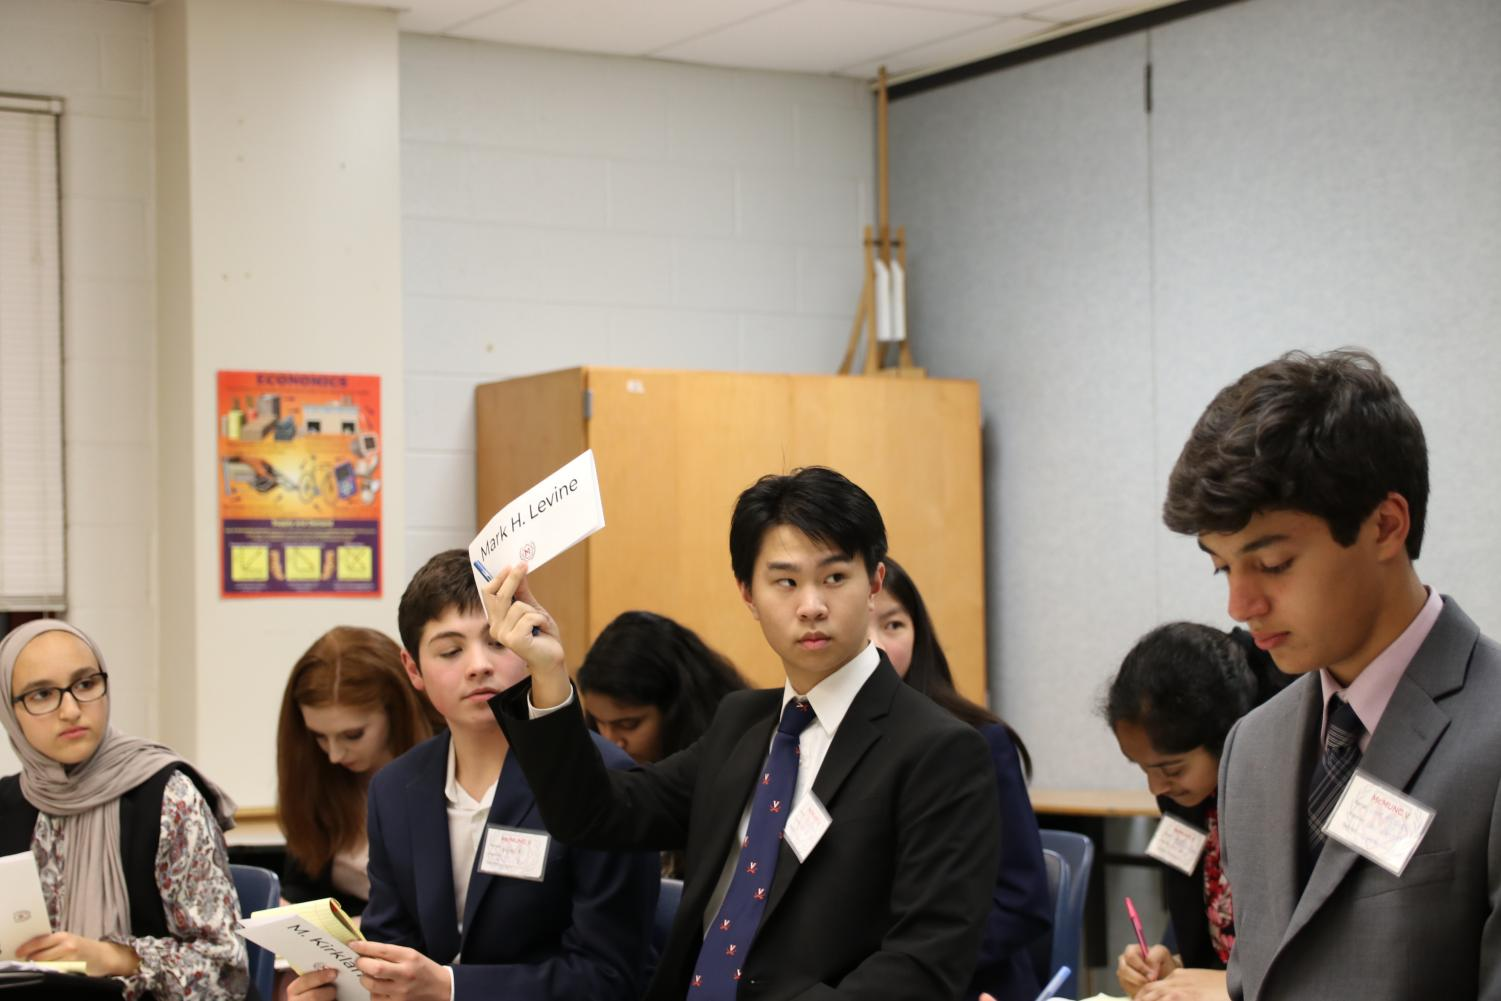 DEBATING DELEGATES - A delegate opts to speak in a conference room during McMUNC on Saturday, Oct. 26. Public speaking and debating is a crucial skill to have in MUN.